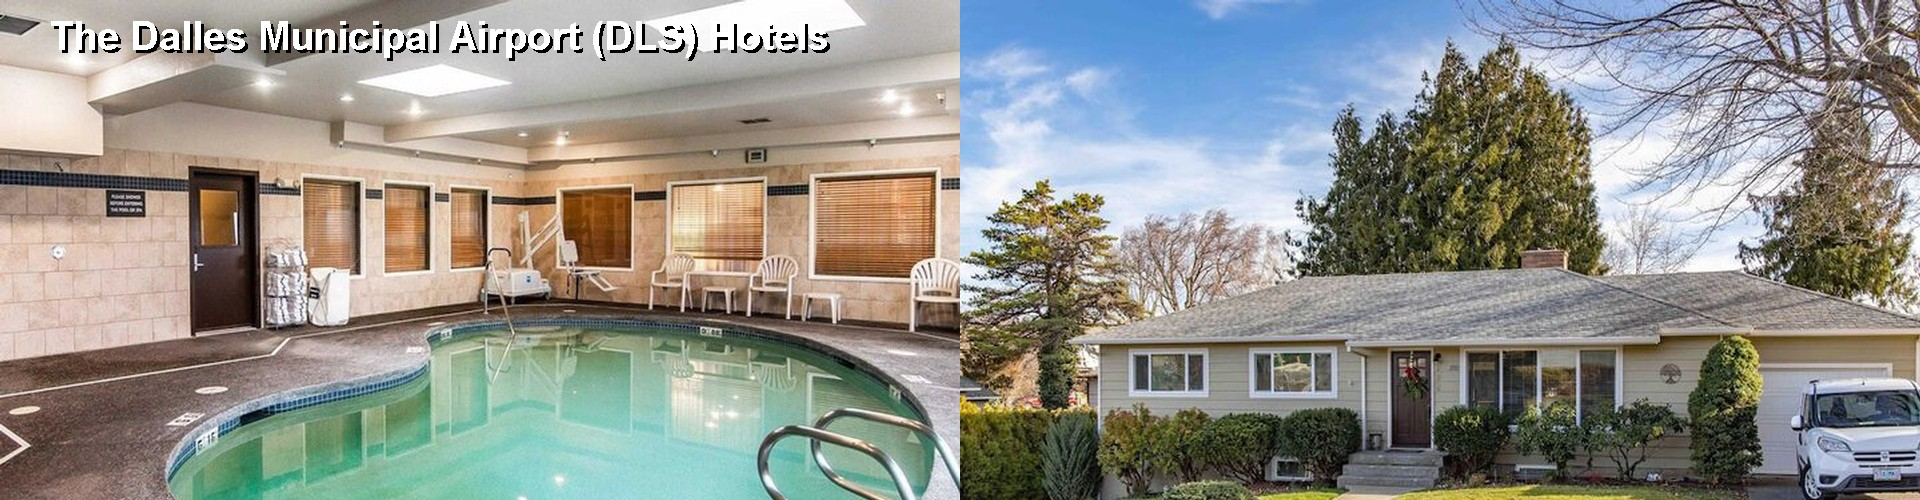 5 Best Hotels near The Dalles Municipal Airport (DLS)